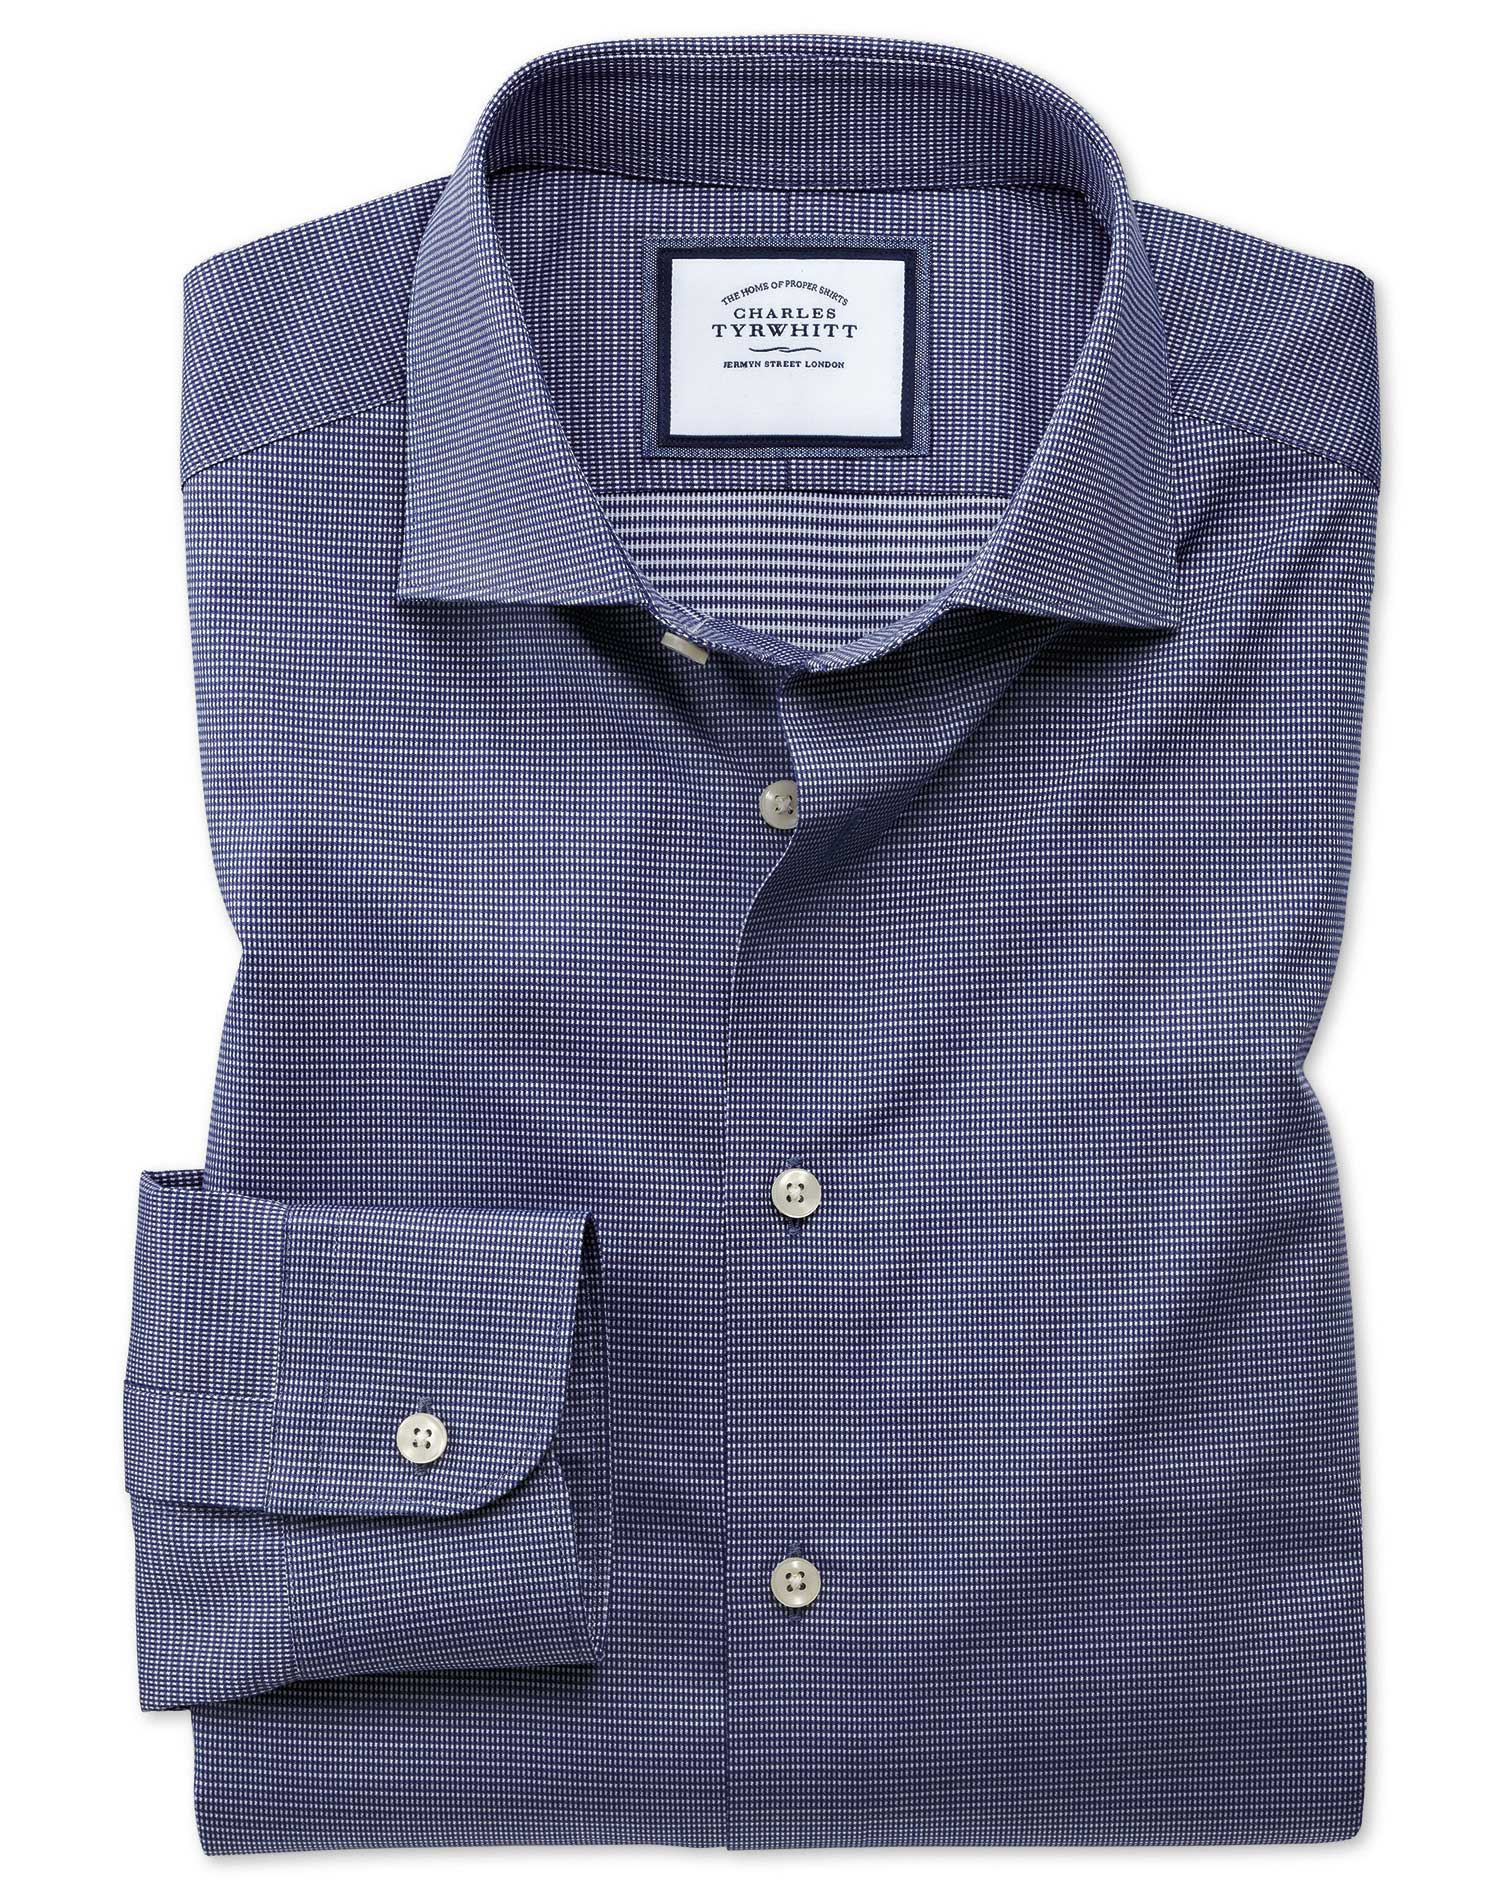 Classic Fit Semi-Cutaway Business Casual Navy Multi Puppytooth Cotton Formal Shirt Single Cuff Size